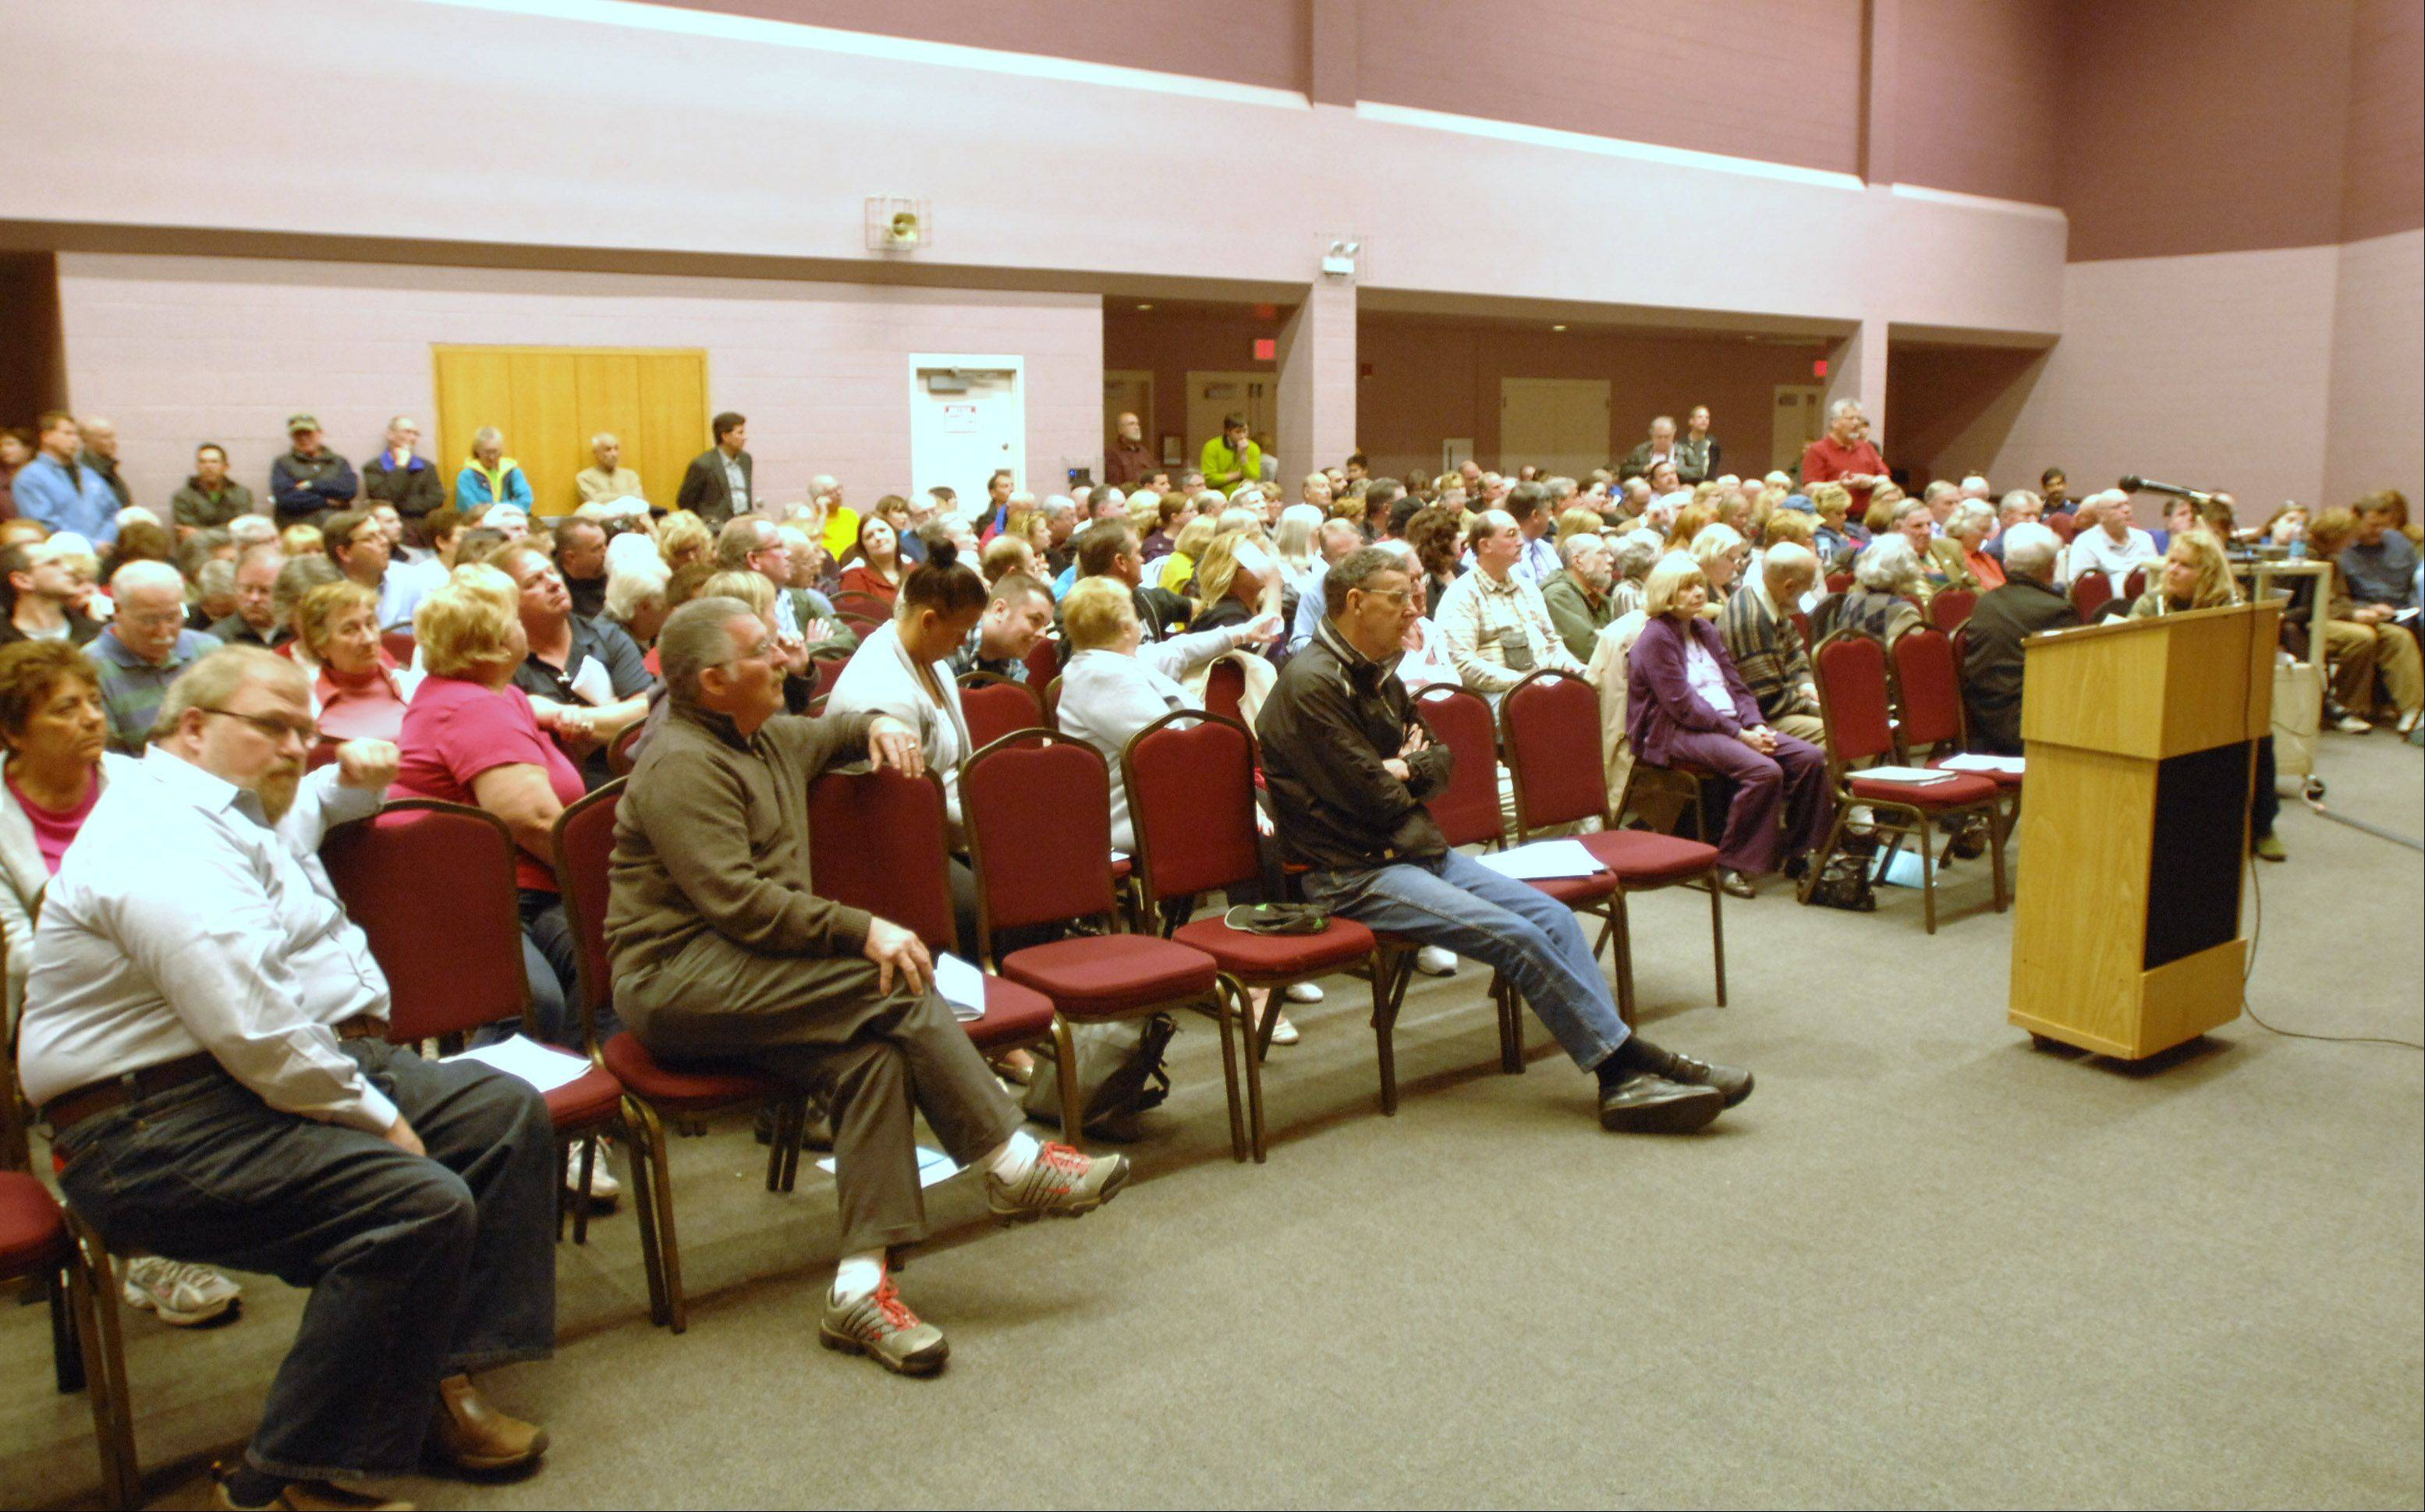 More than 250 concerned residents attend the Milton Township annual meeting Tuesday at the Wheaton Park District Community Center.